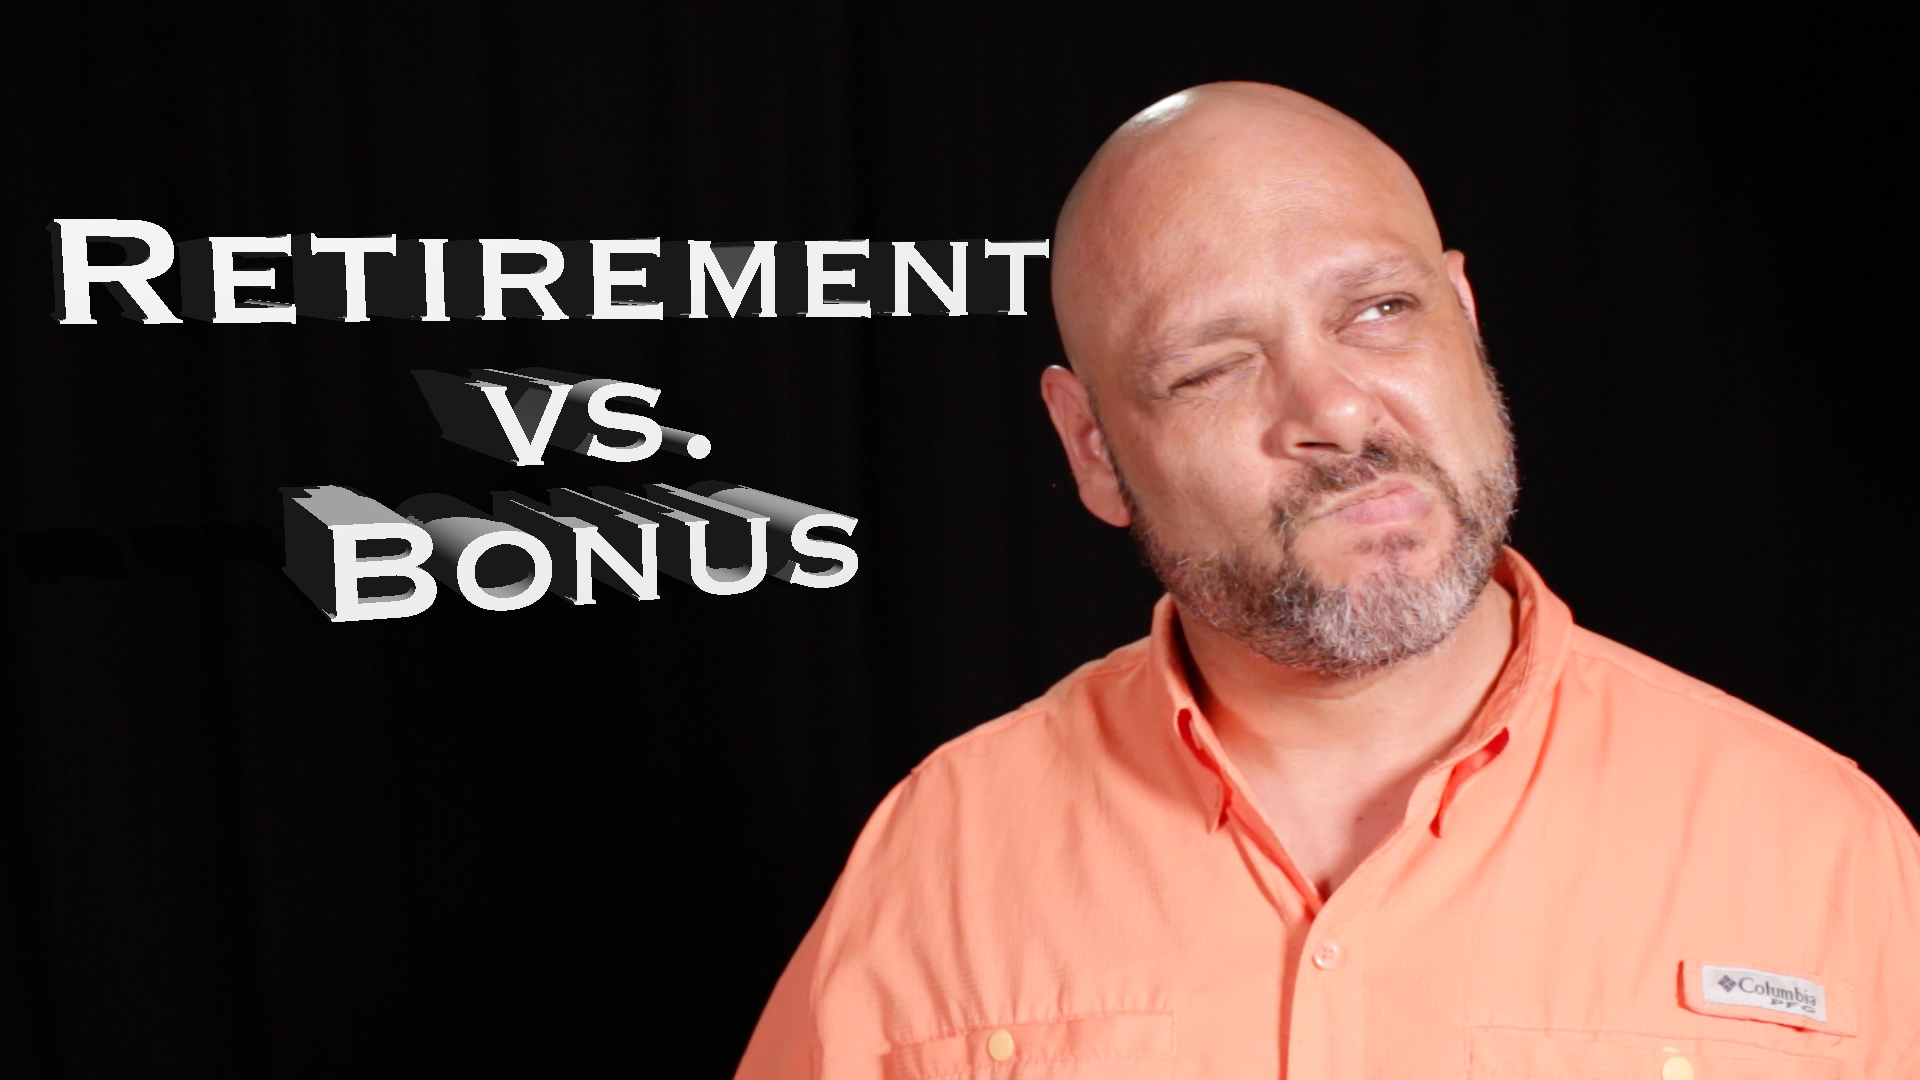 Retirement vs. Bonus